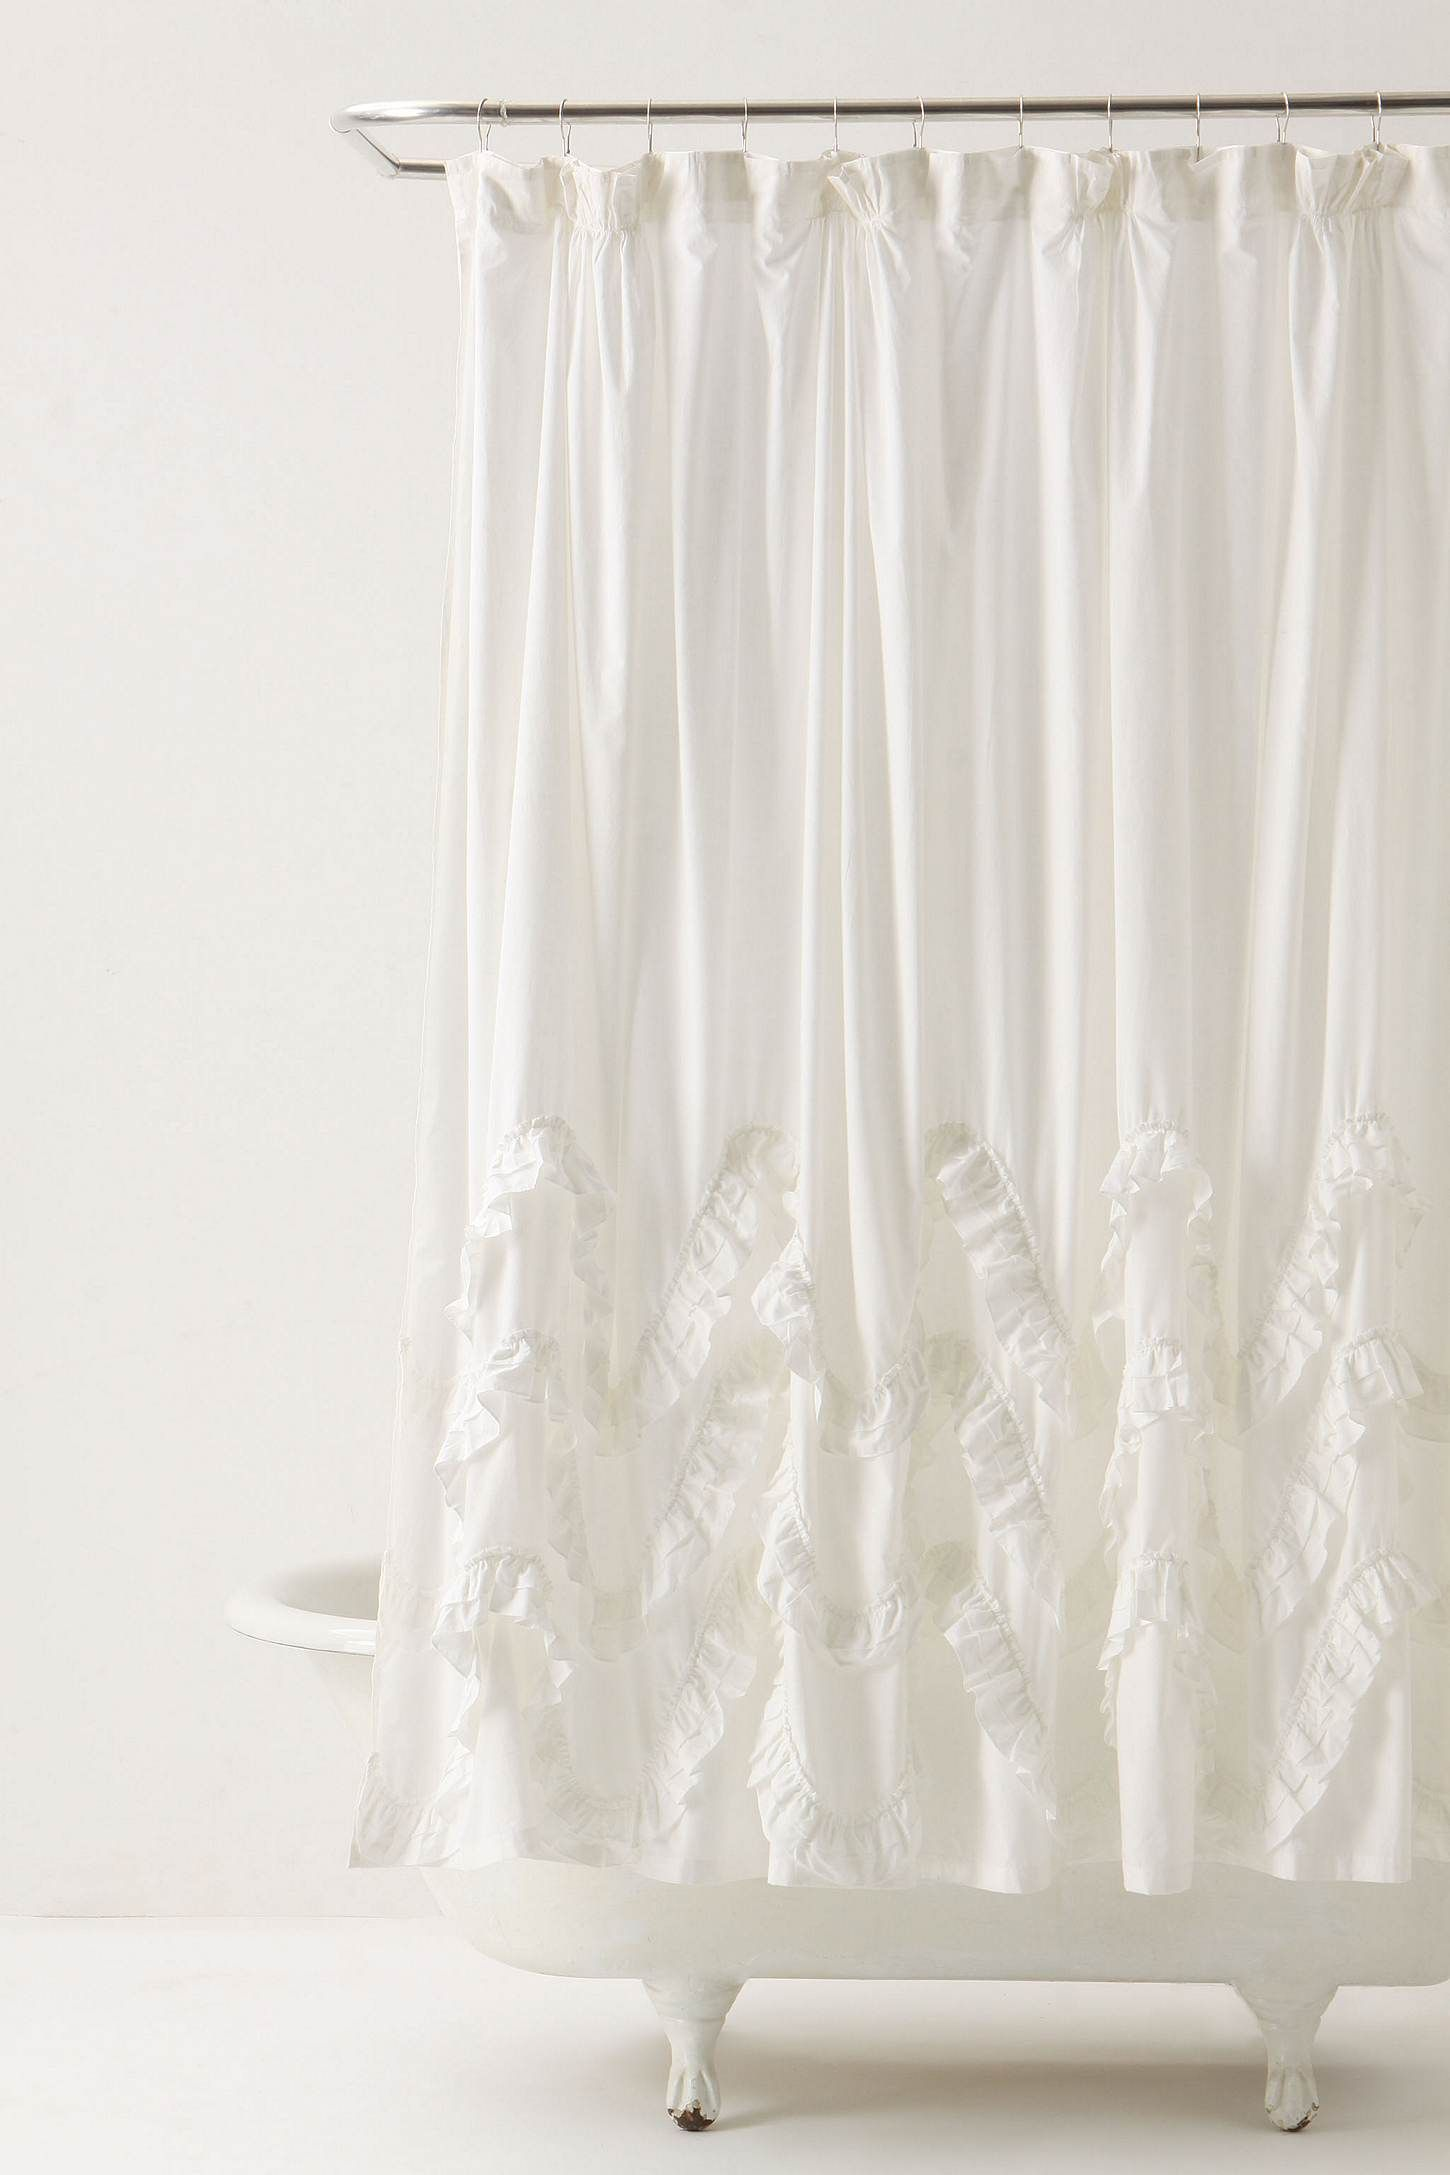 Waves Of Ruffles Shower Curtain With Images Ruffle Shower